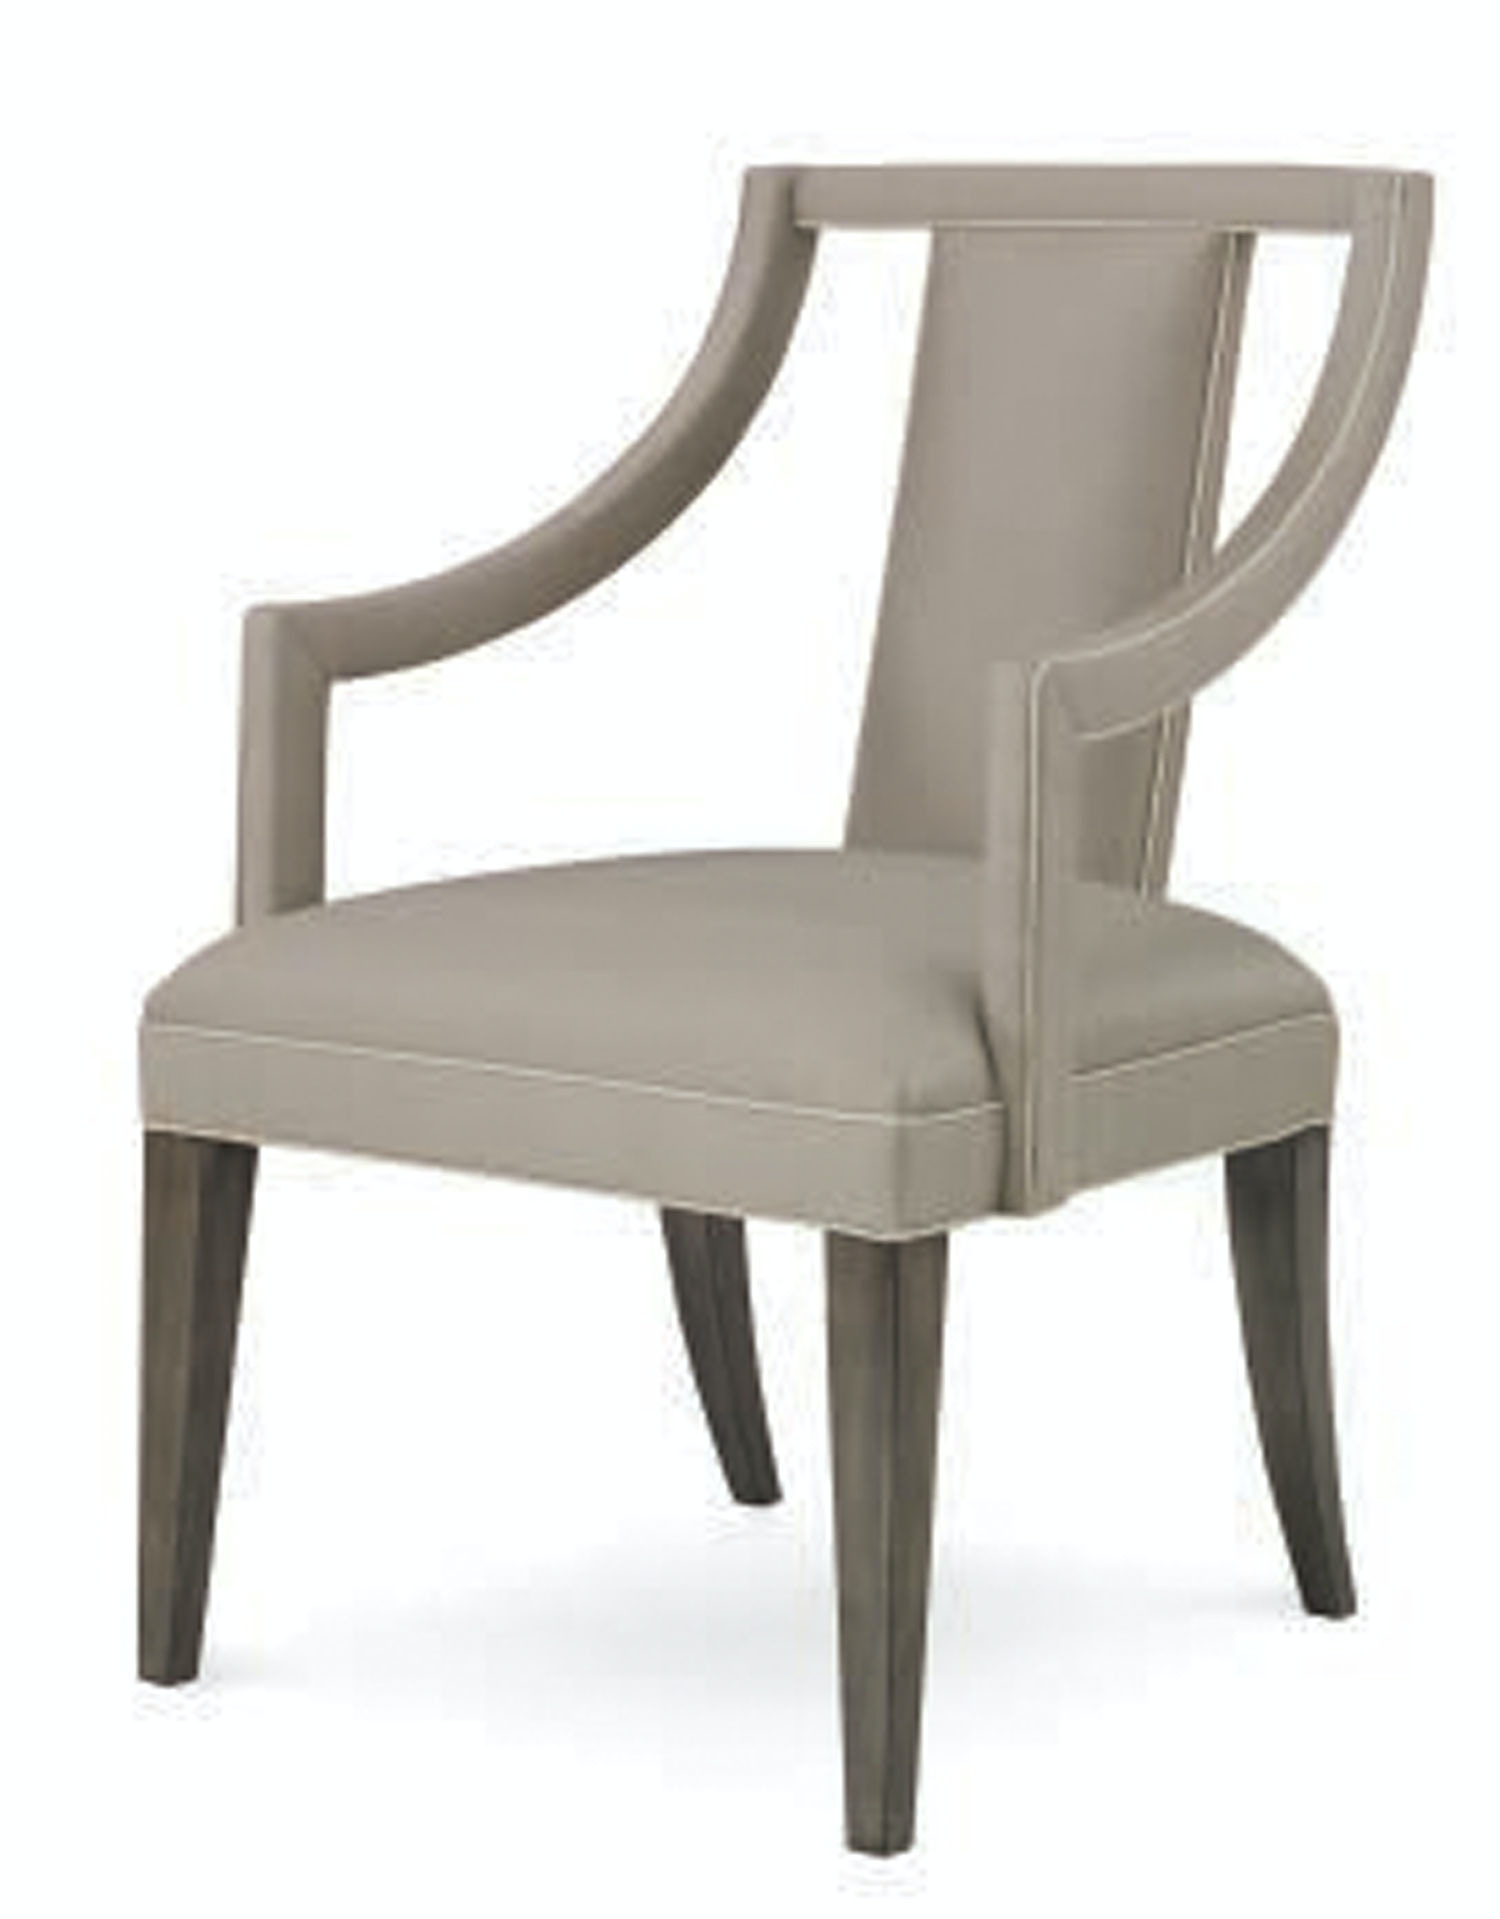 Kravet Degas Dining Chair FS41A